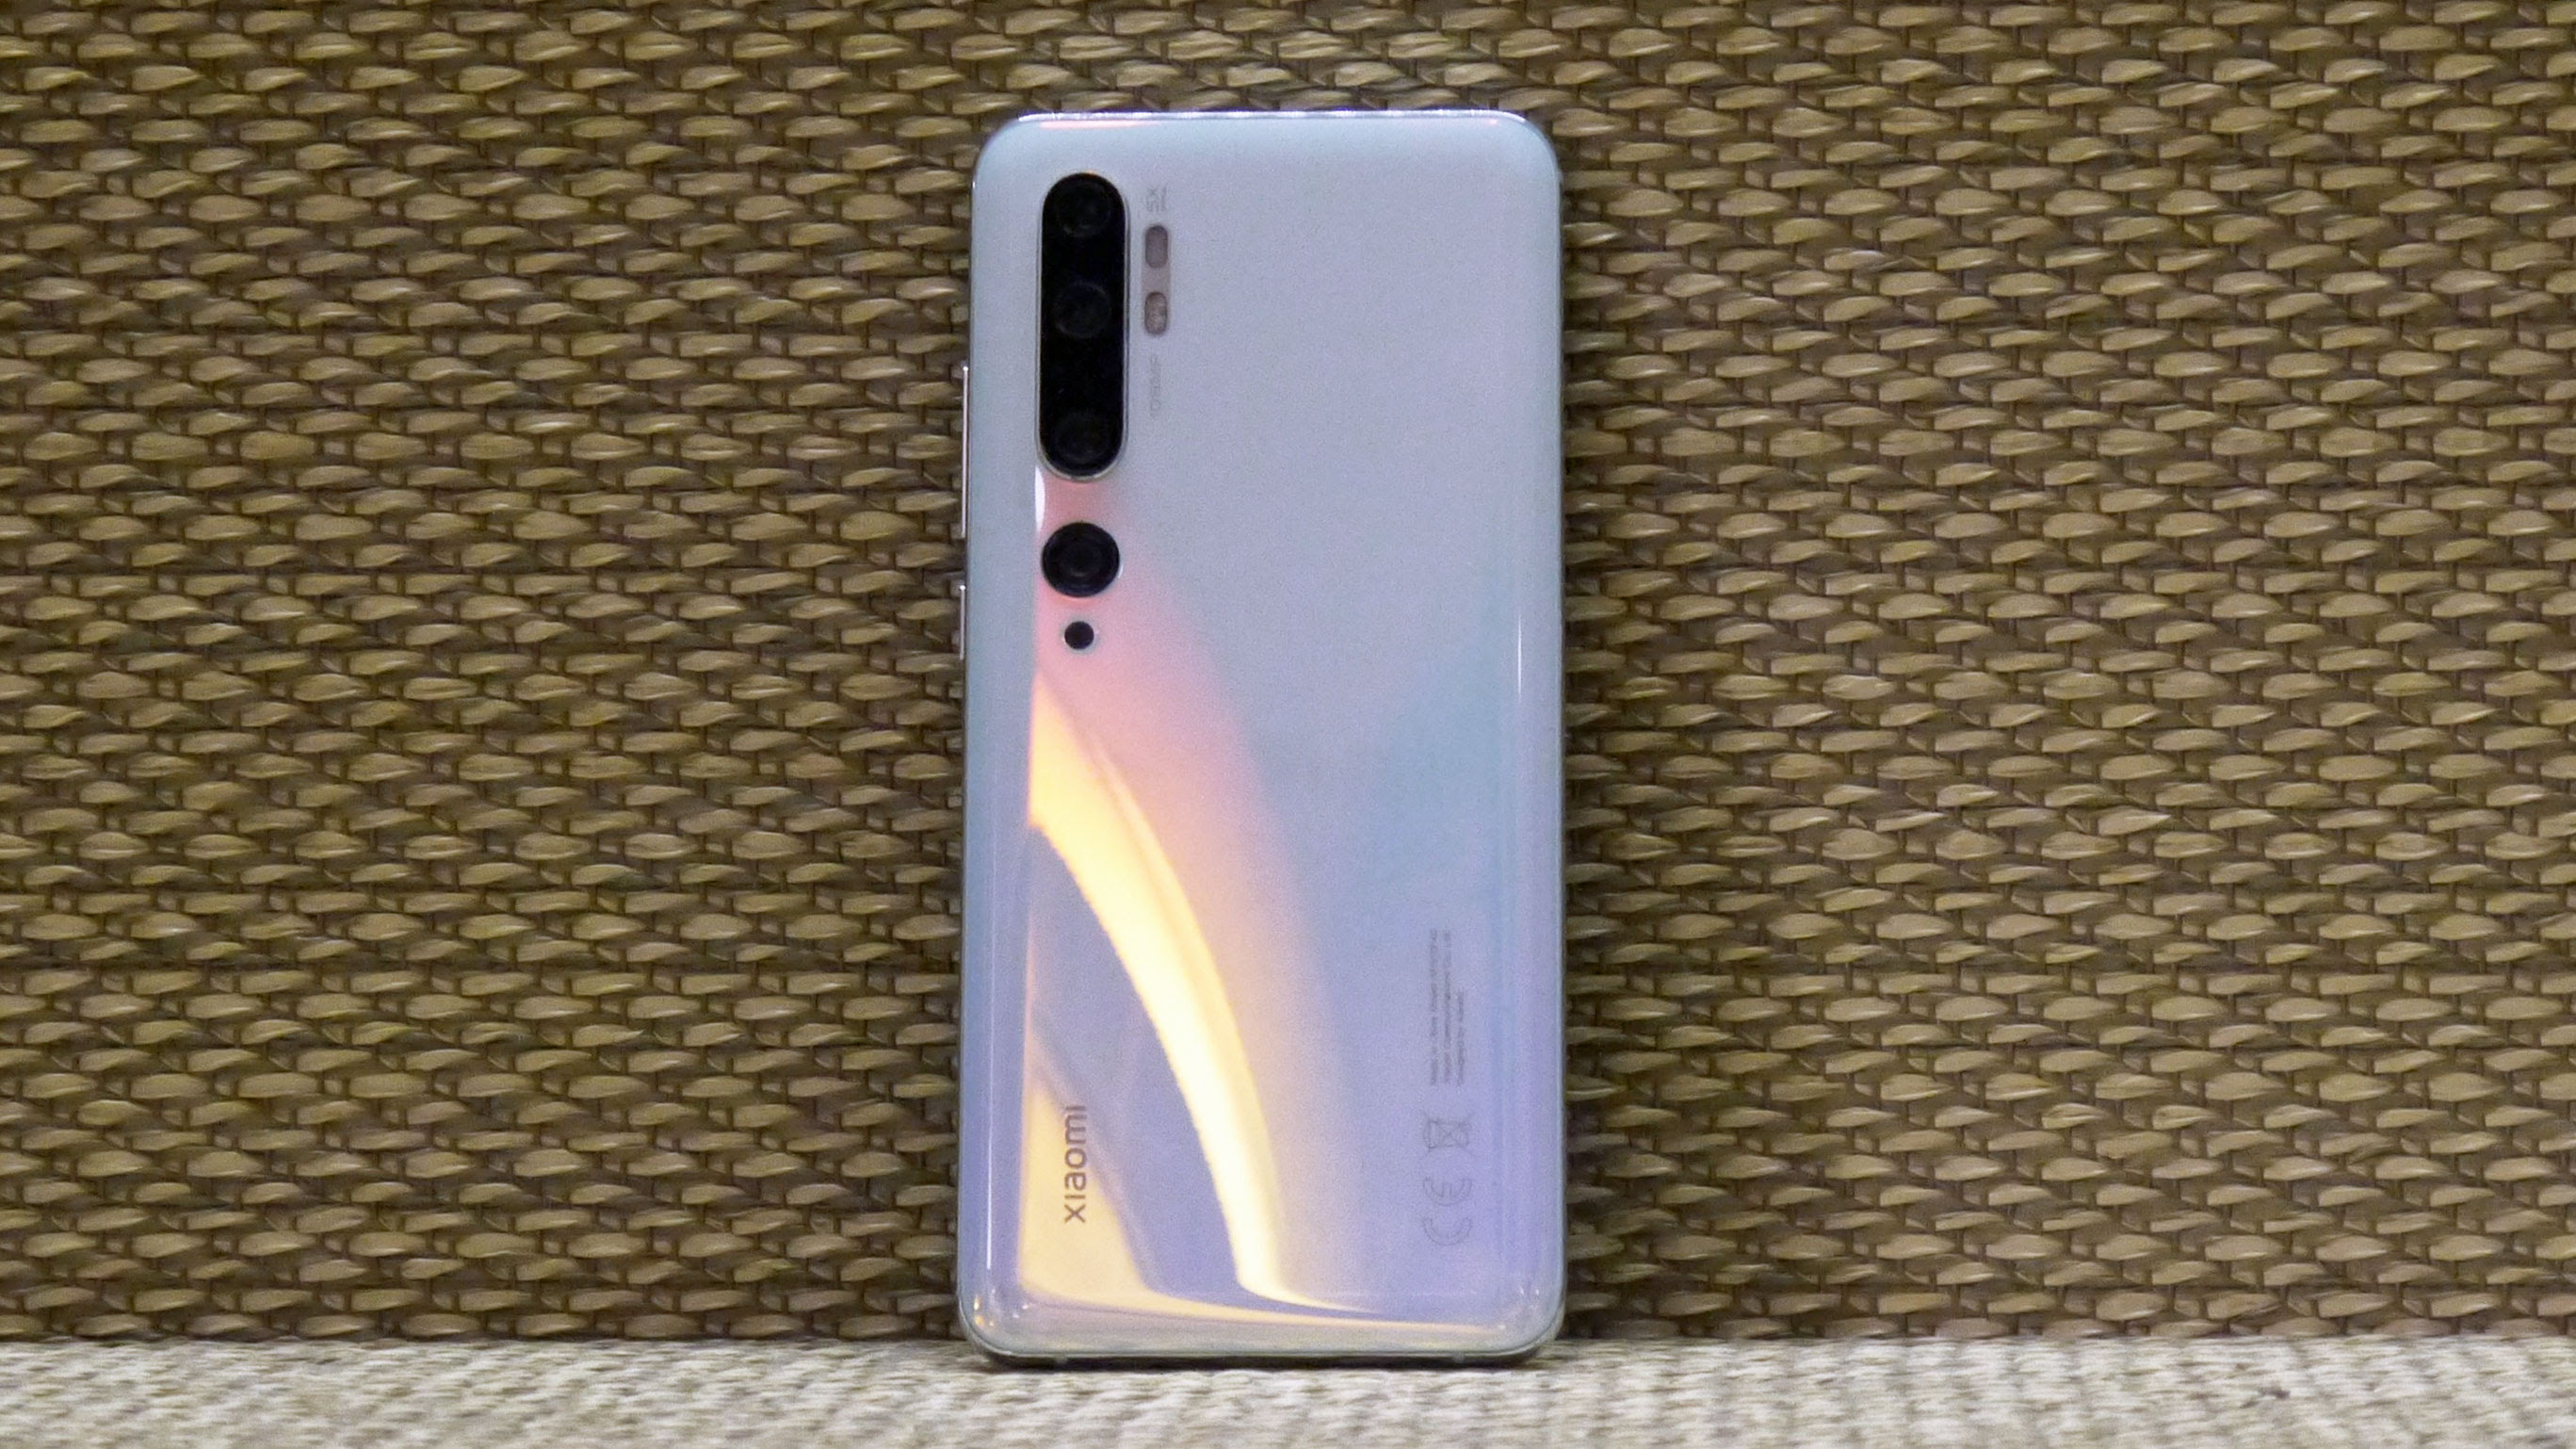 Xiaomi Mi Note 11 release date might be very soon, after reference spotted in code